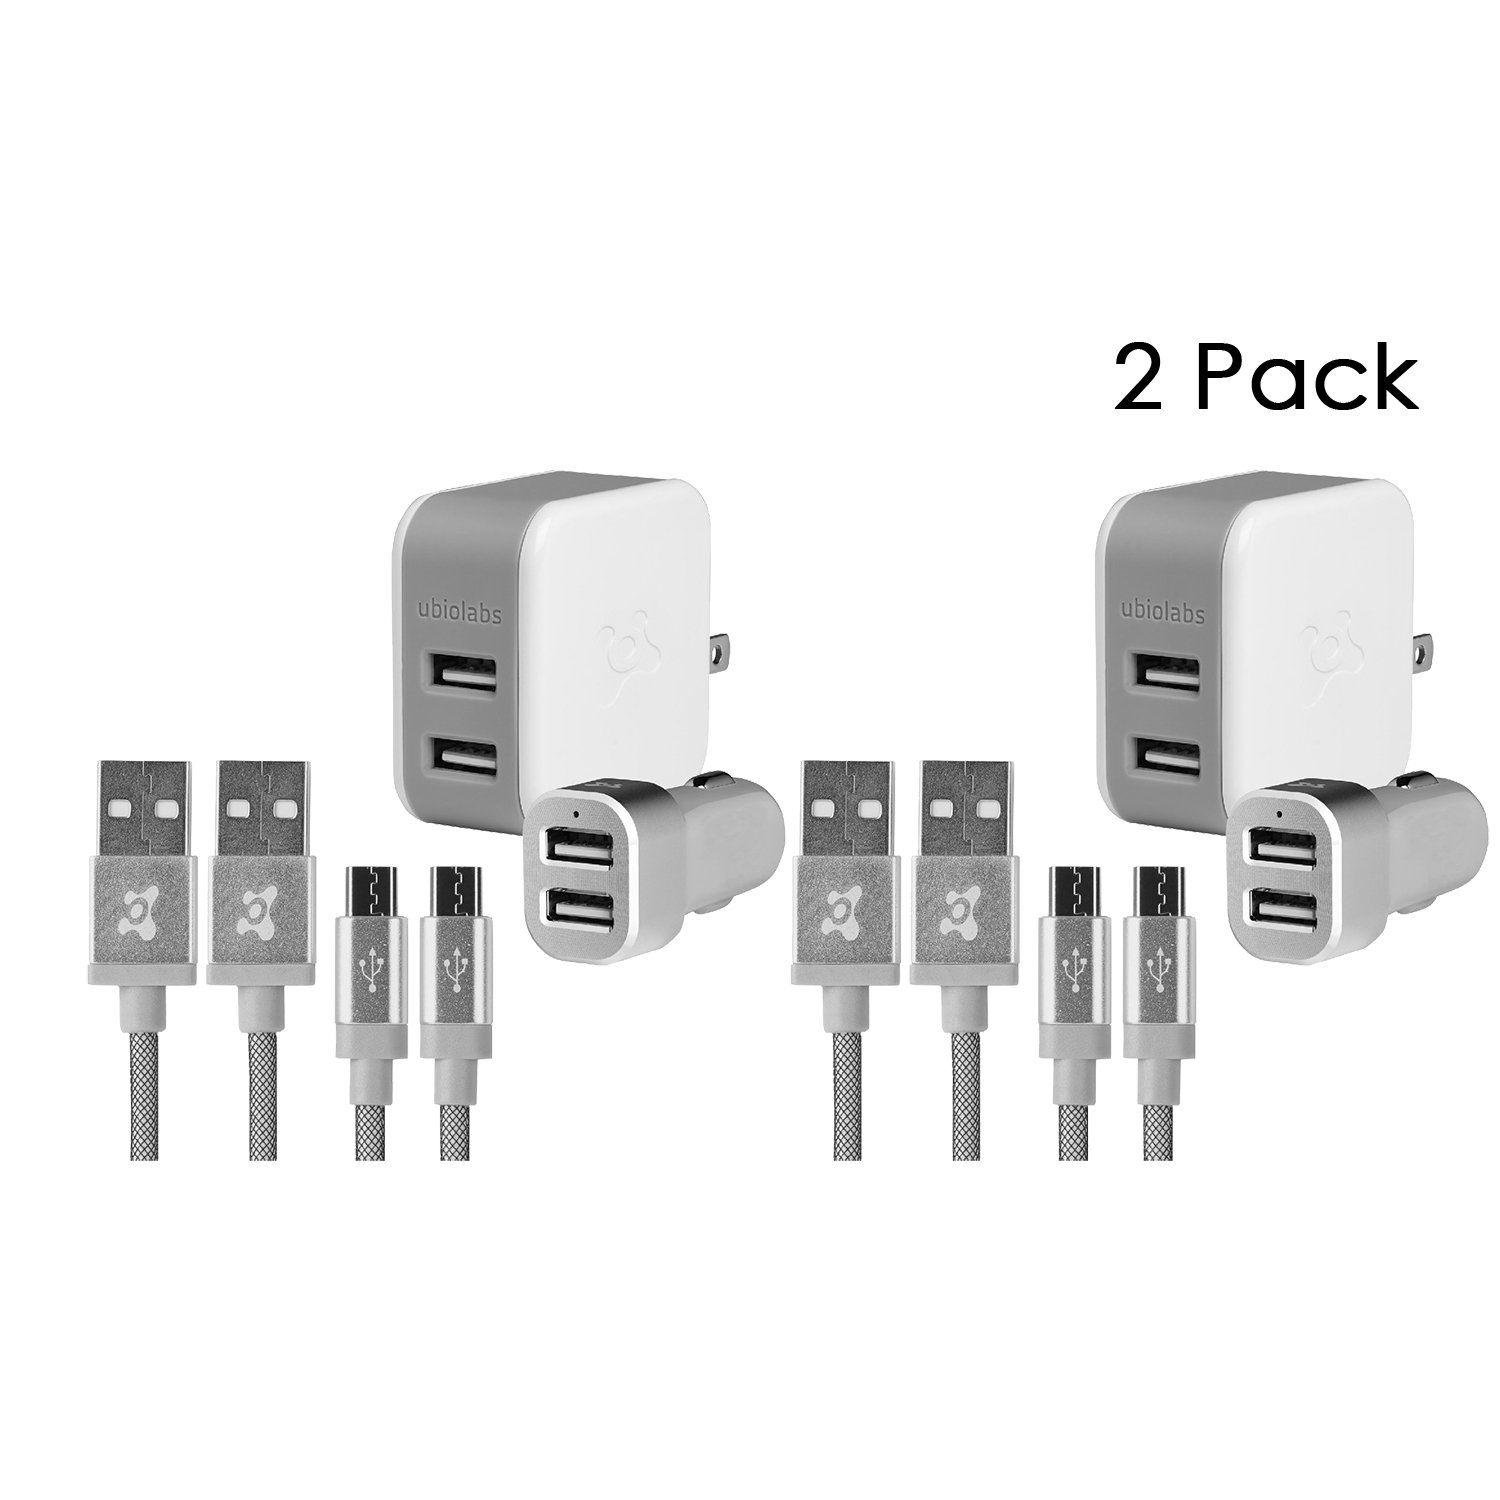 Ubio Labs (2-Pack) 6ft Tangle-Free Micro USB Cable kit for Android, Samsung, HTC, LG, Motorola. 6 Foot Long Woven Charge/sync Cord with Dual USB Wall and car Charger. 2.4A /4.8A (24W) CBB100